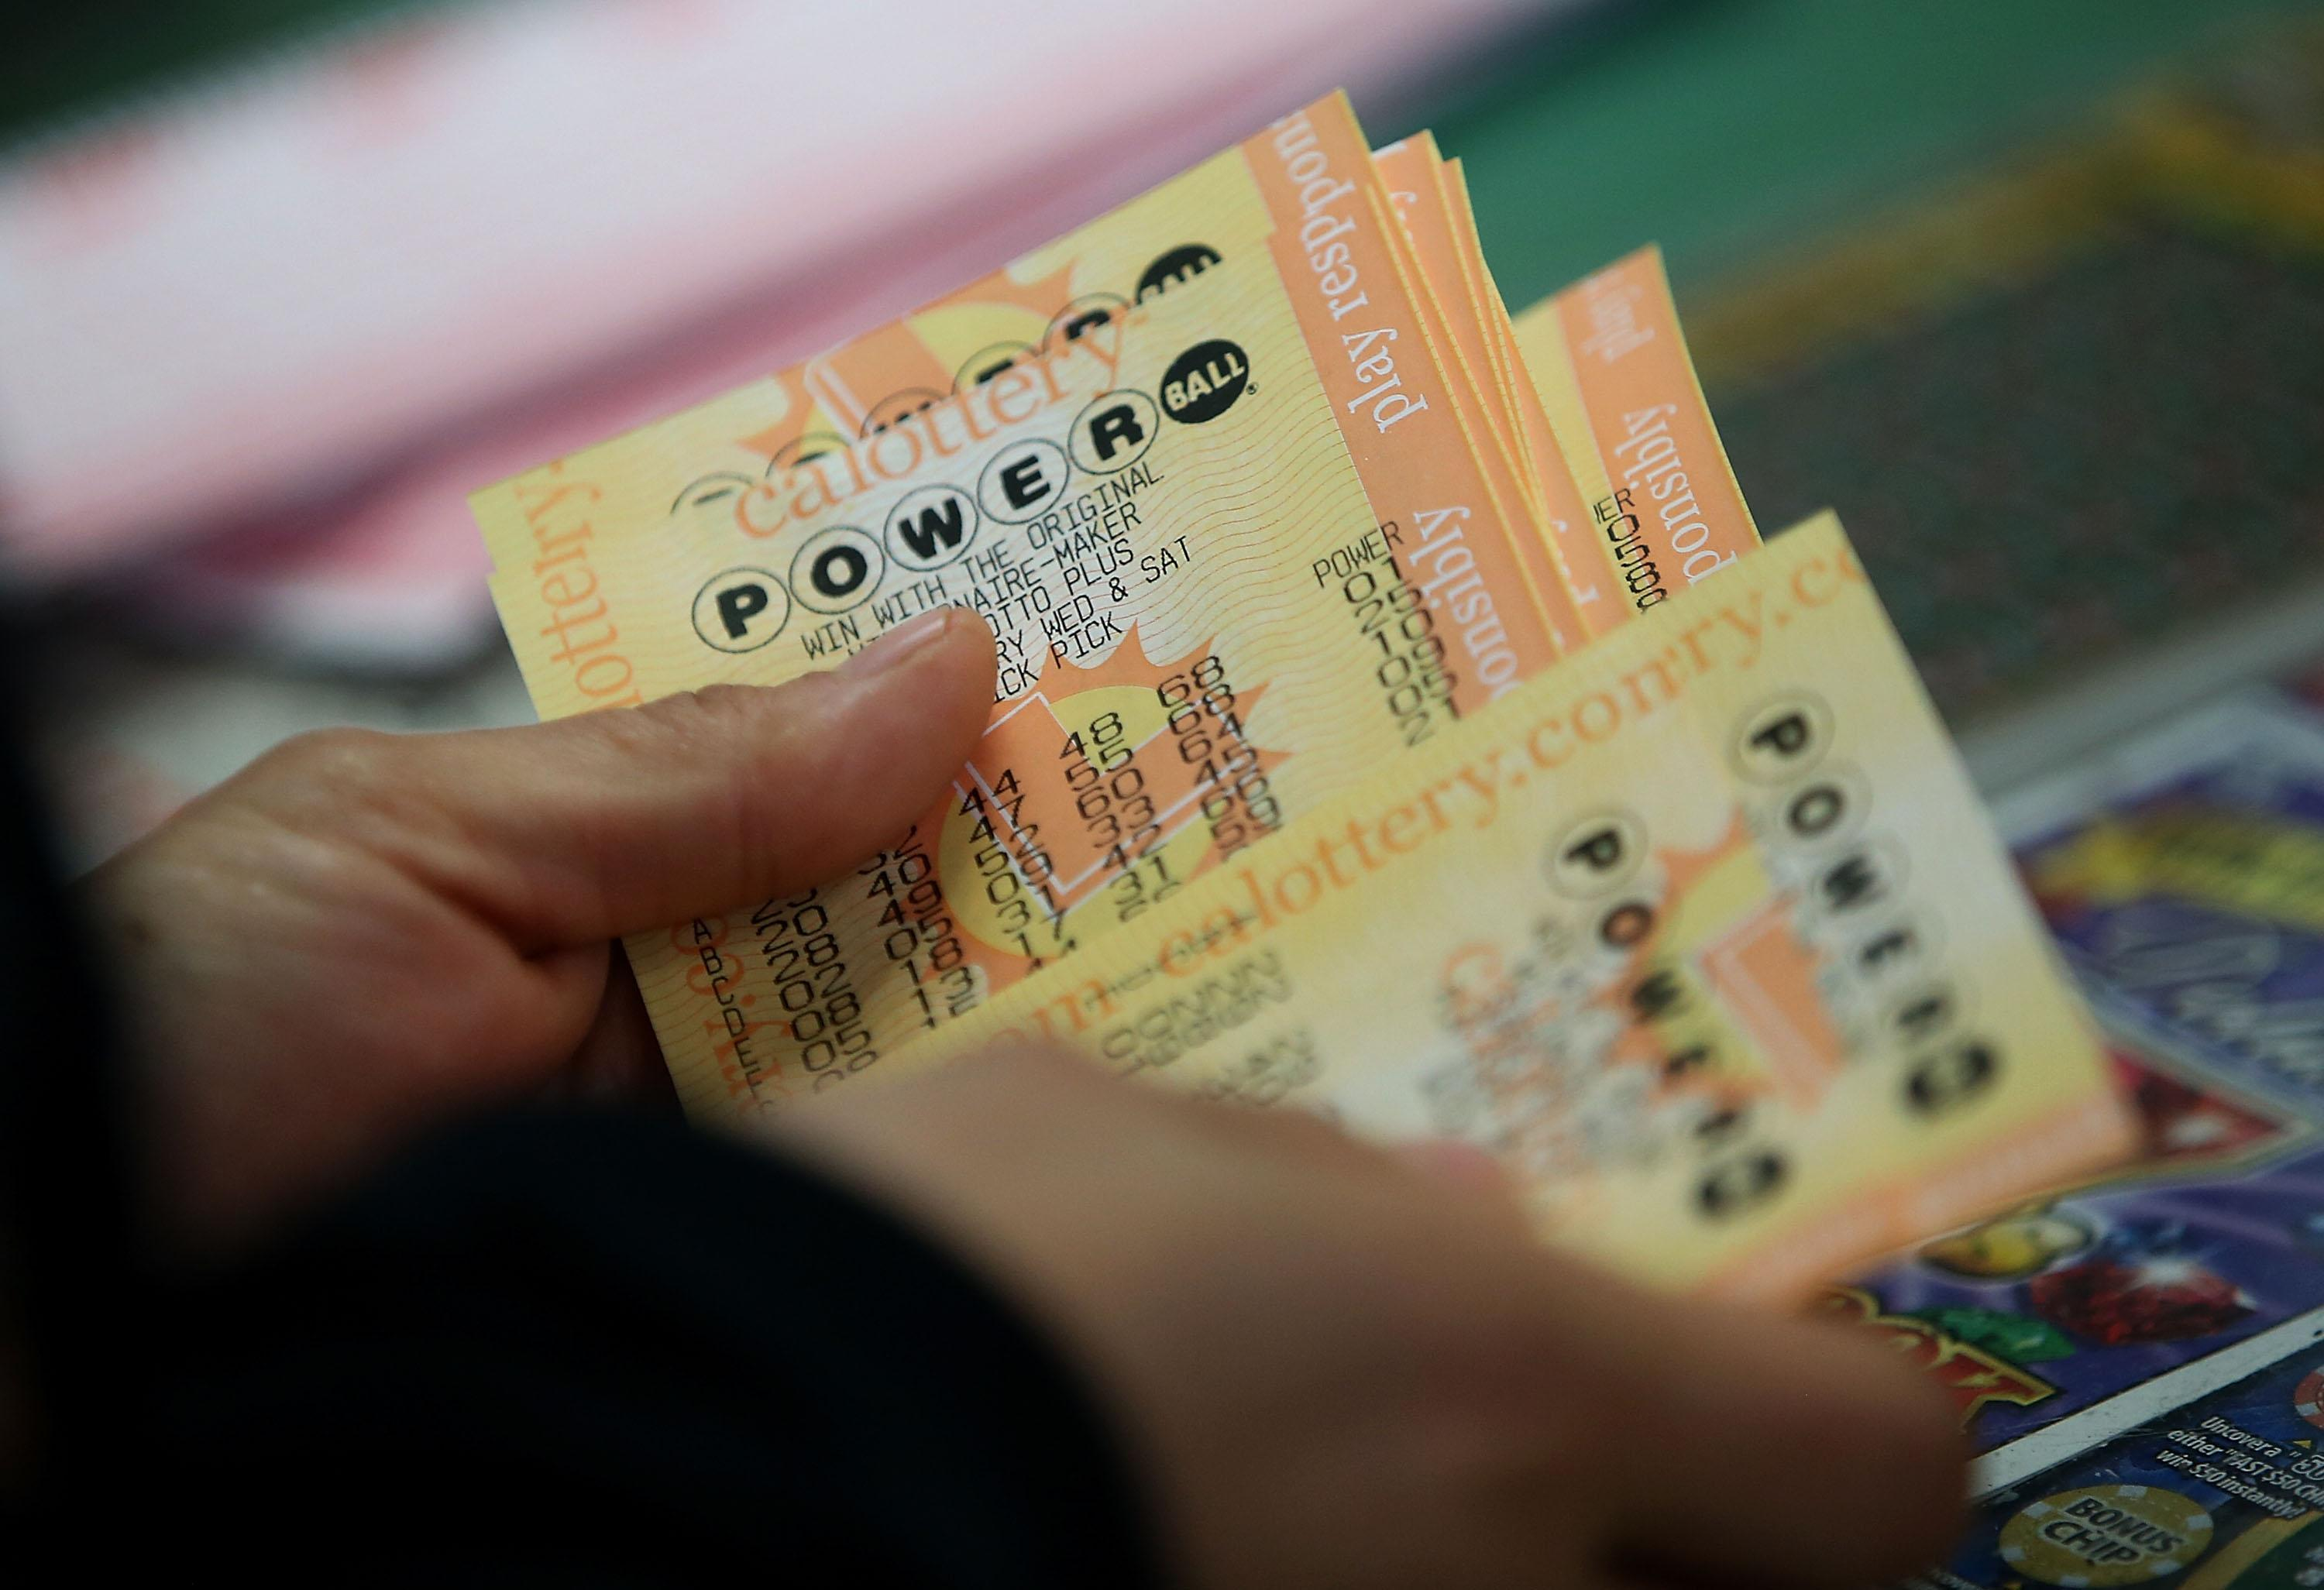 Powerball, Mega Millions offer 2 chances at jackpots over $300M